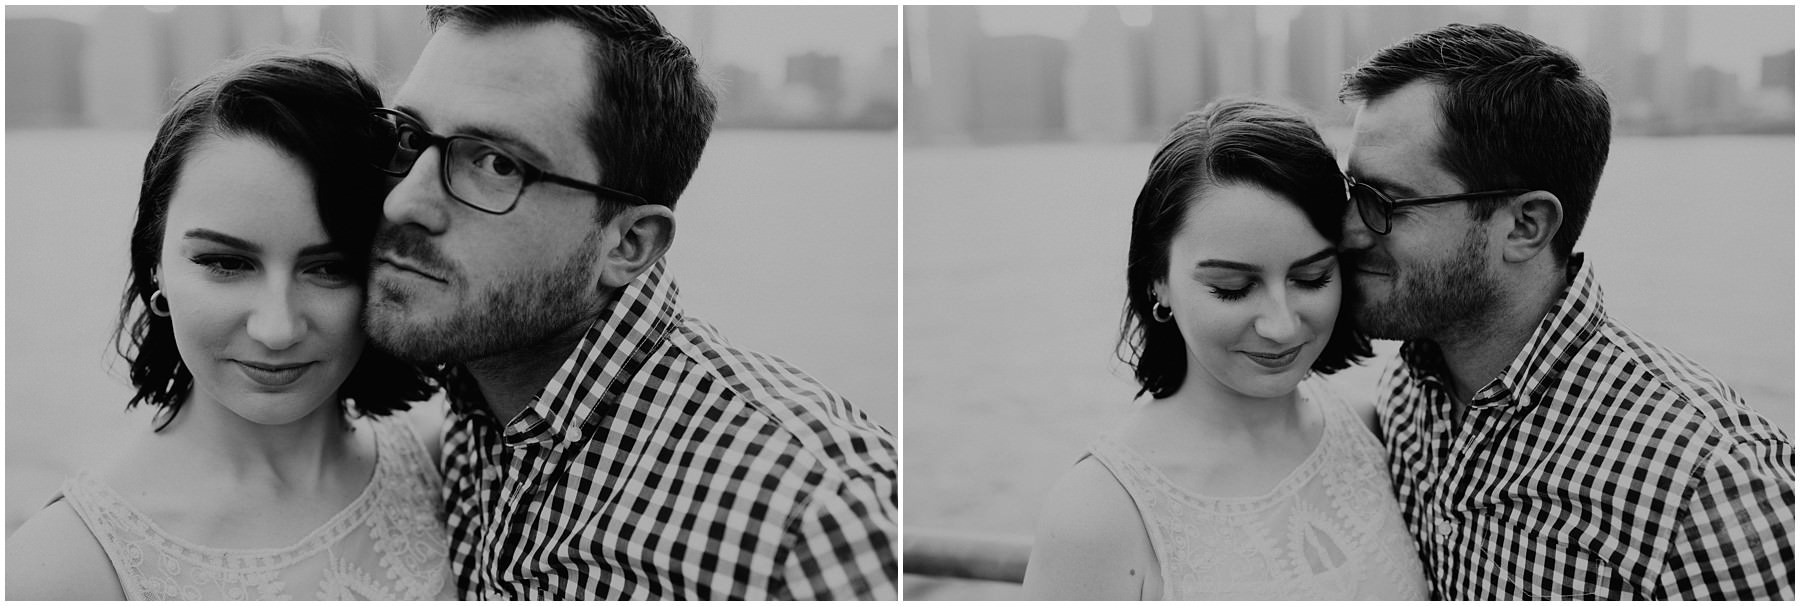 Manhatten couple shoot wedding photographer